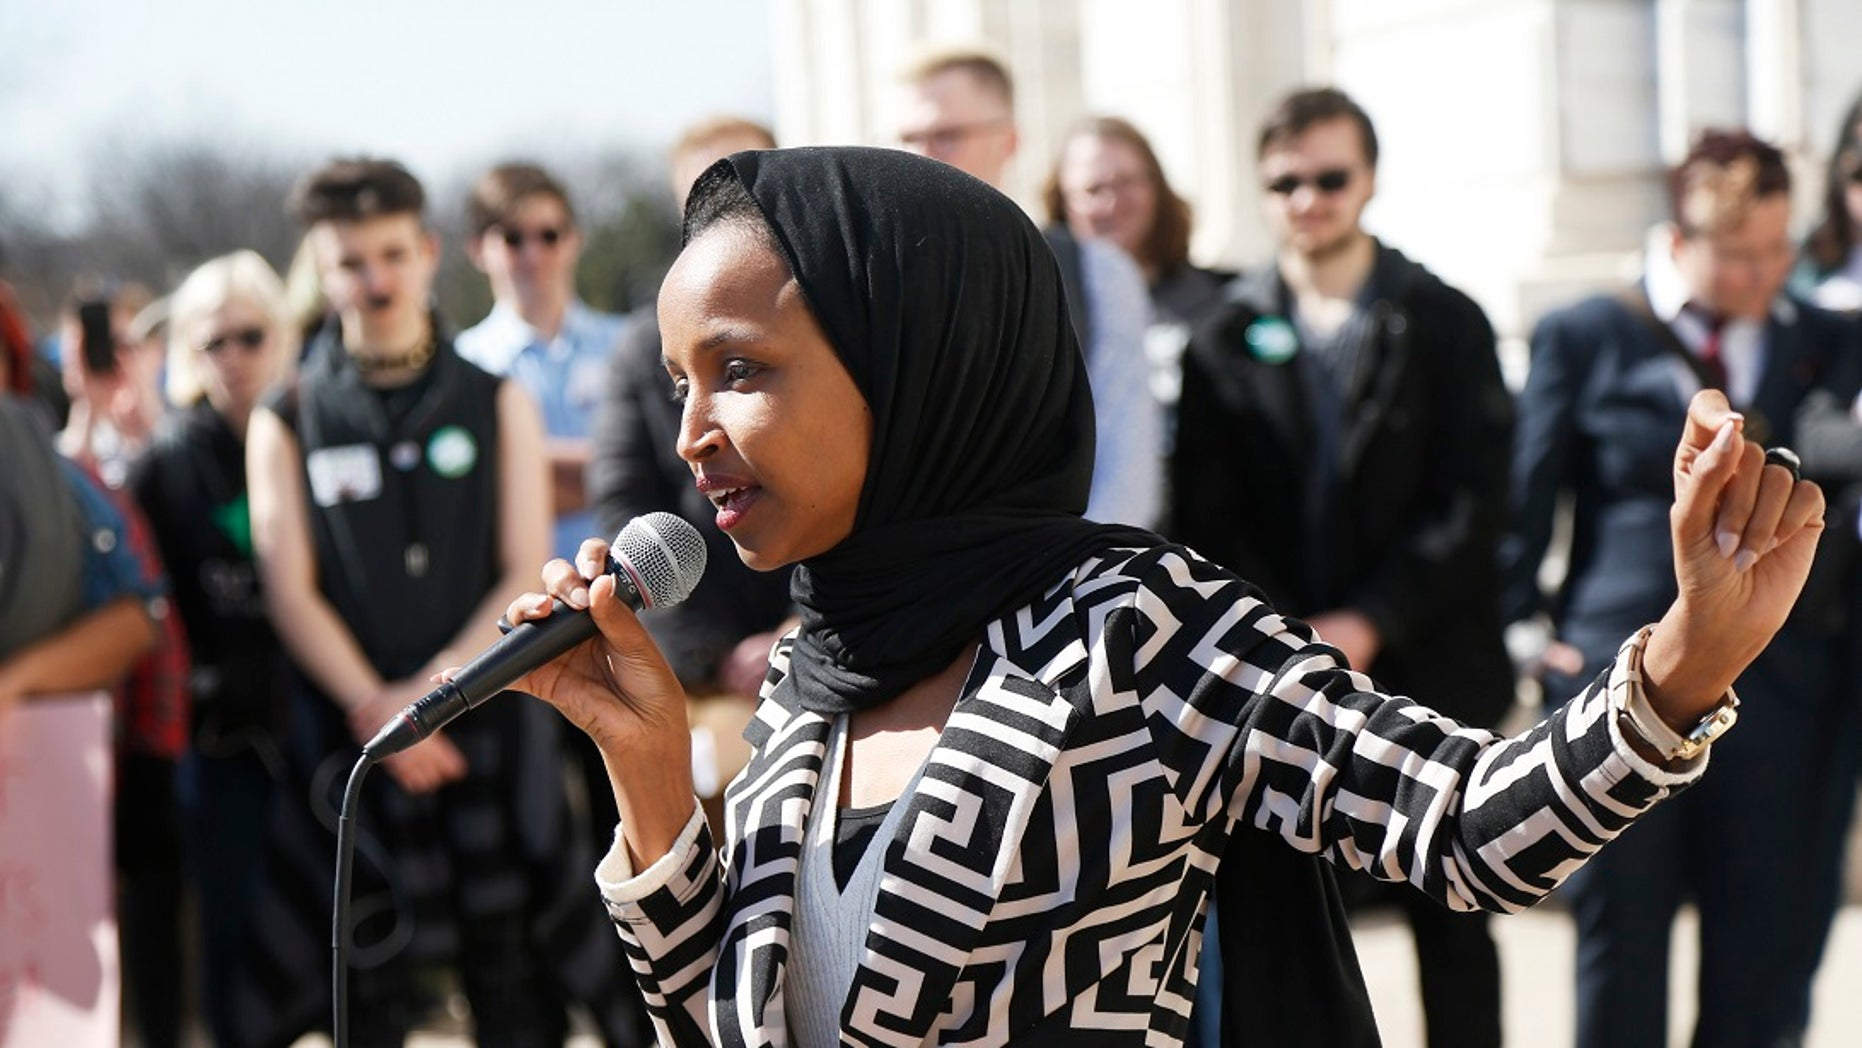 Rep. Omar Slams Speaker Pelosi for Opposing Anti-Semitism in AIPAC Speech